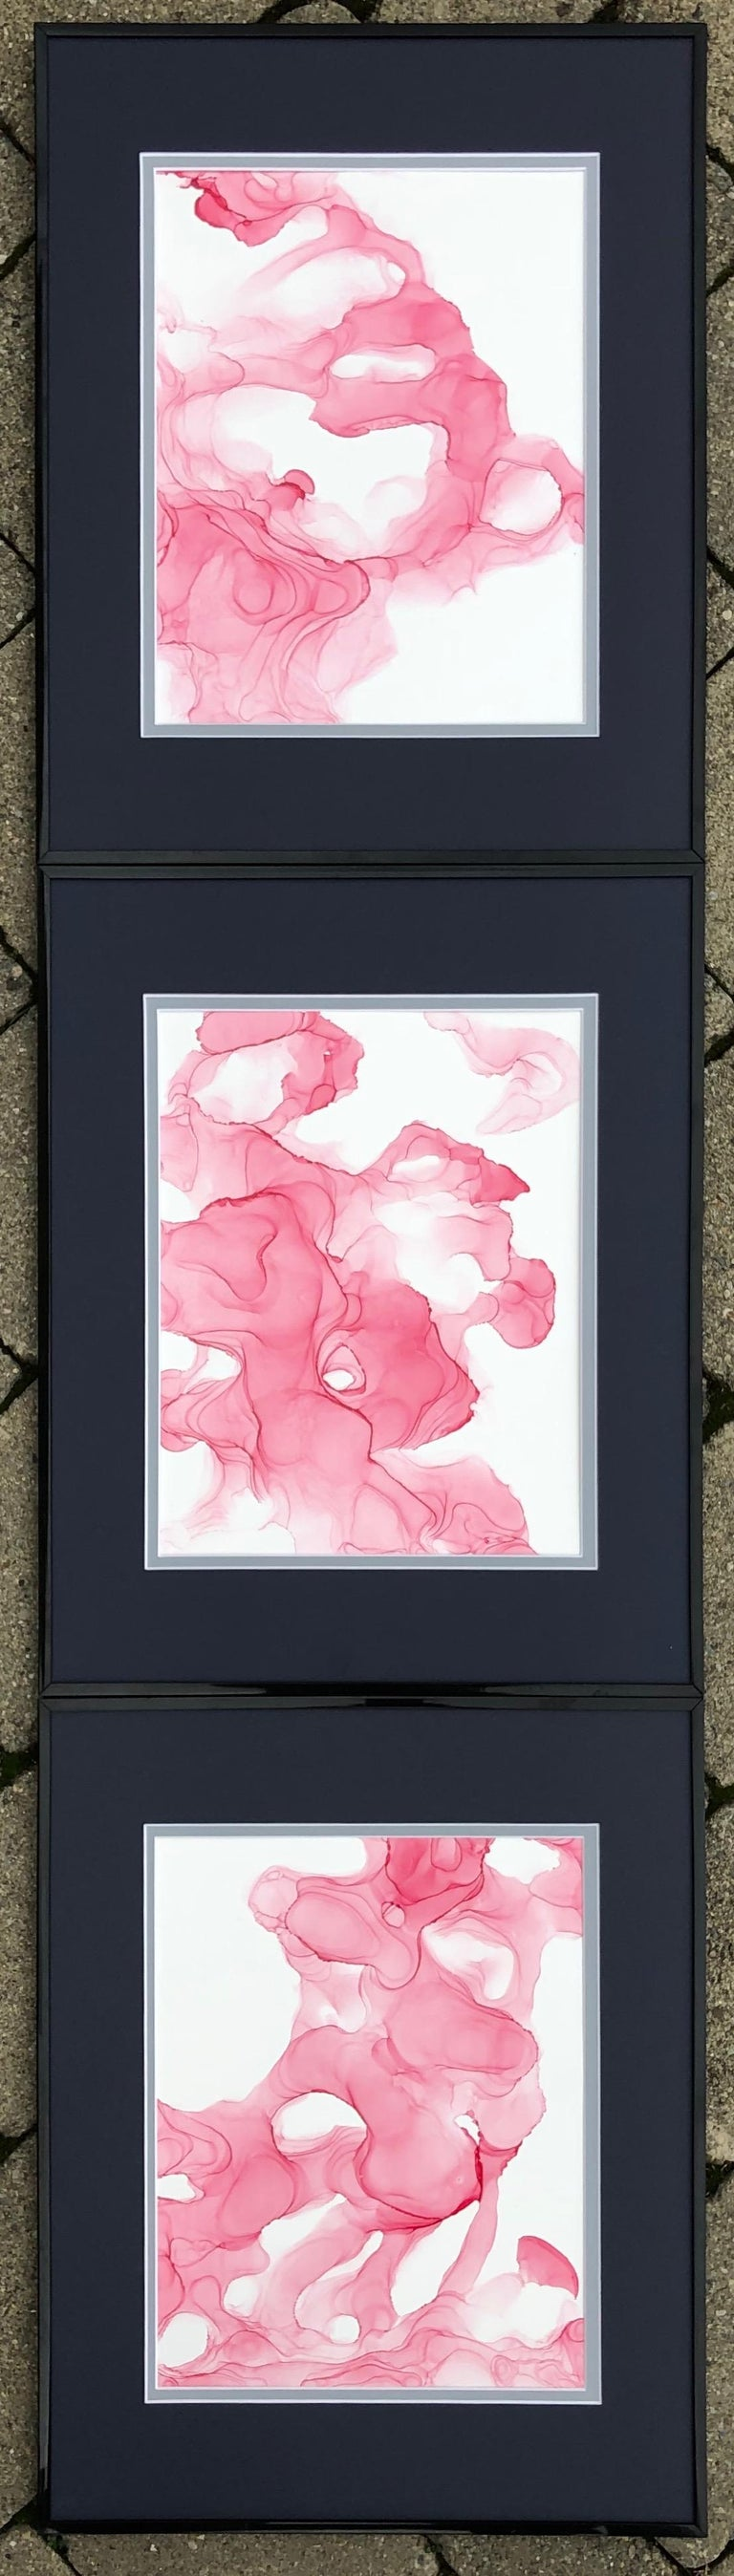 Mila Akopova Abstract Drawing - Wild Orchid-abstraction art,made in pale pink, rose colored